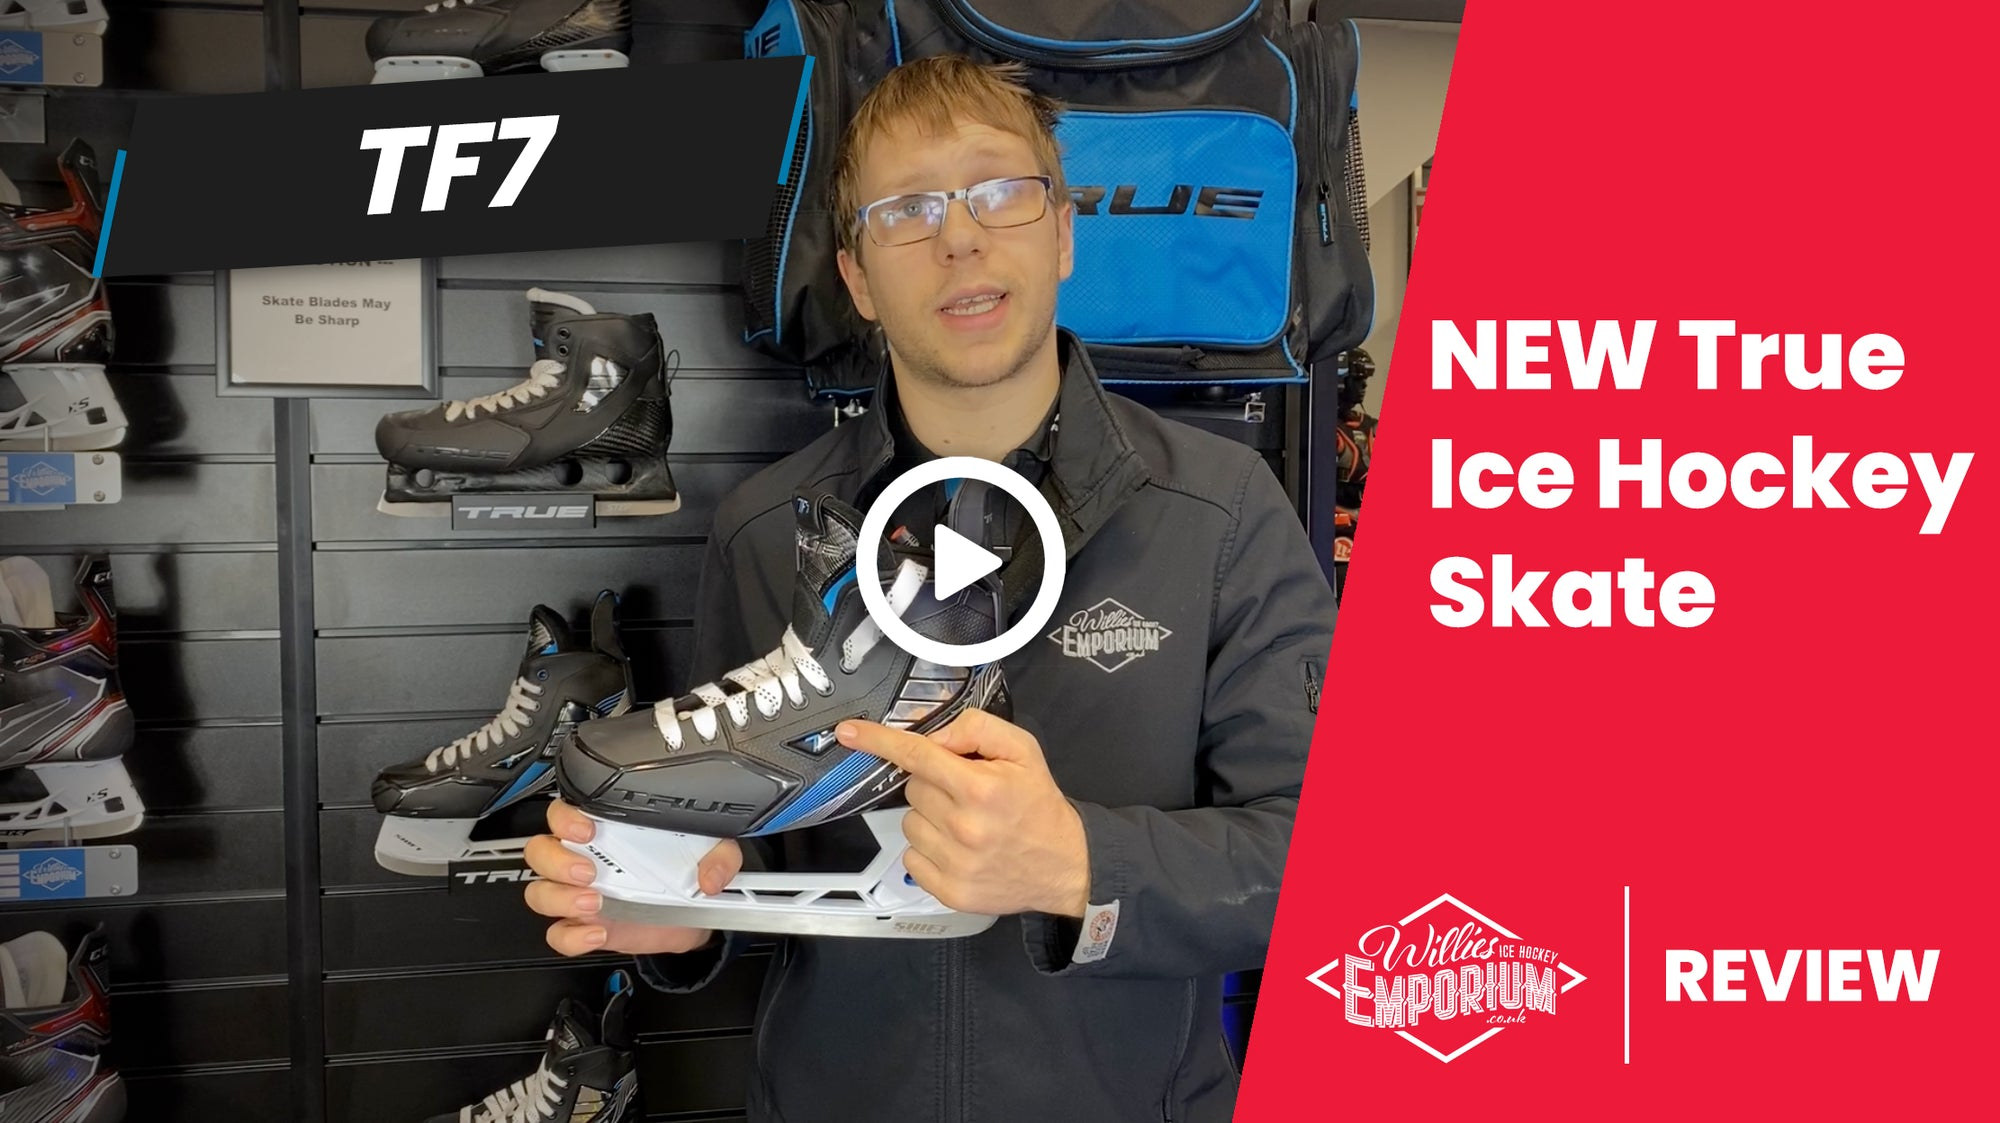 NEW True TF7 Ice Hockey Skates